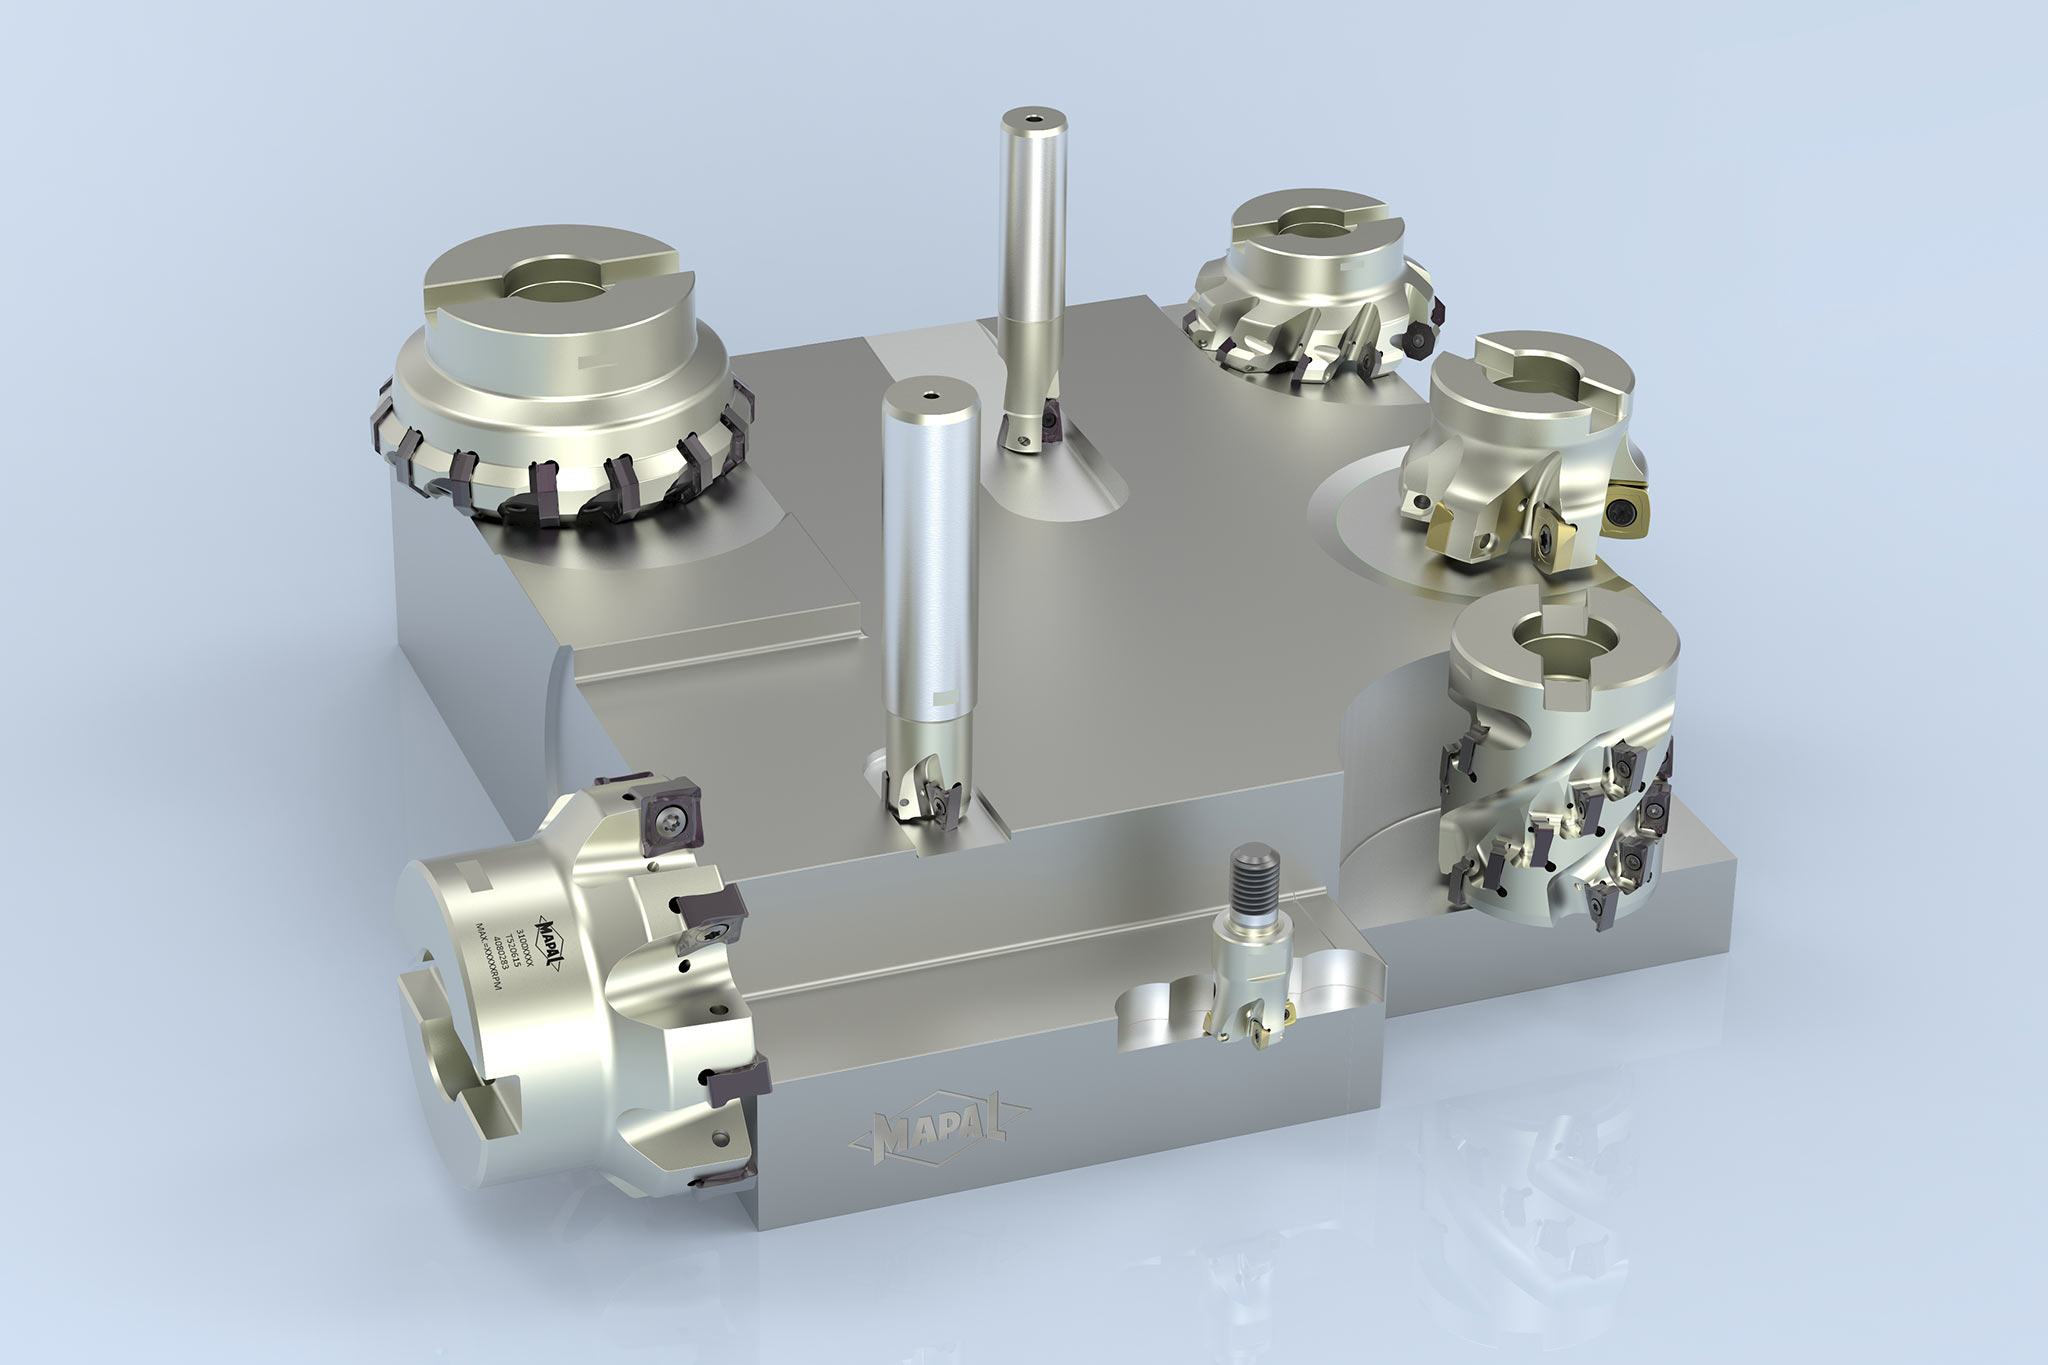 MAPAL | Your technology partner for machining